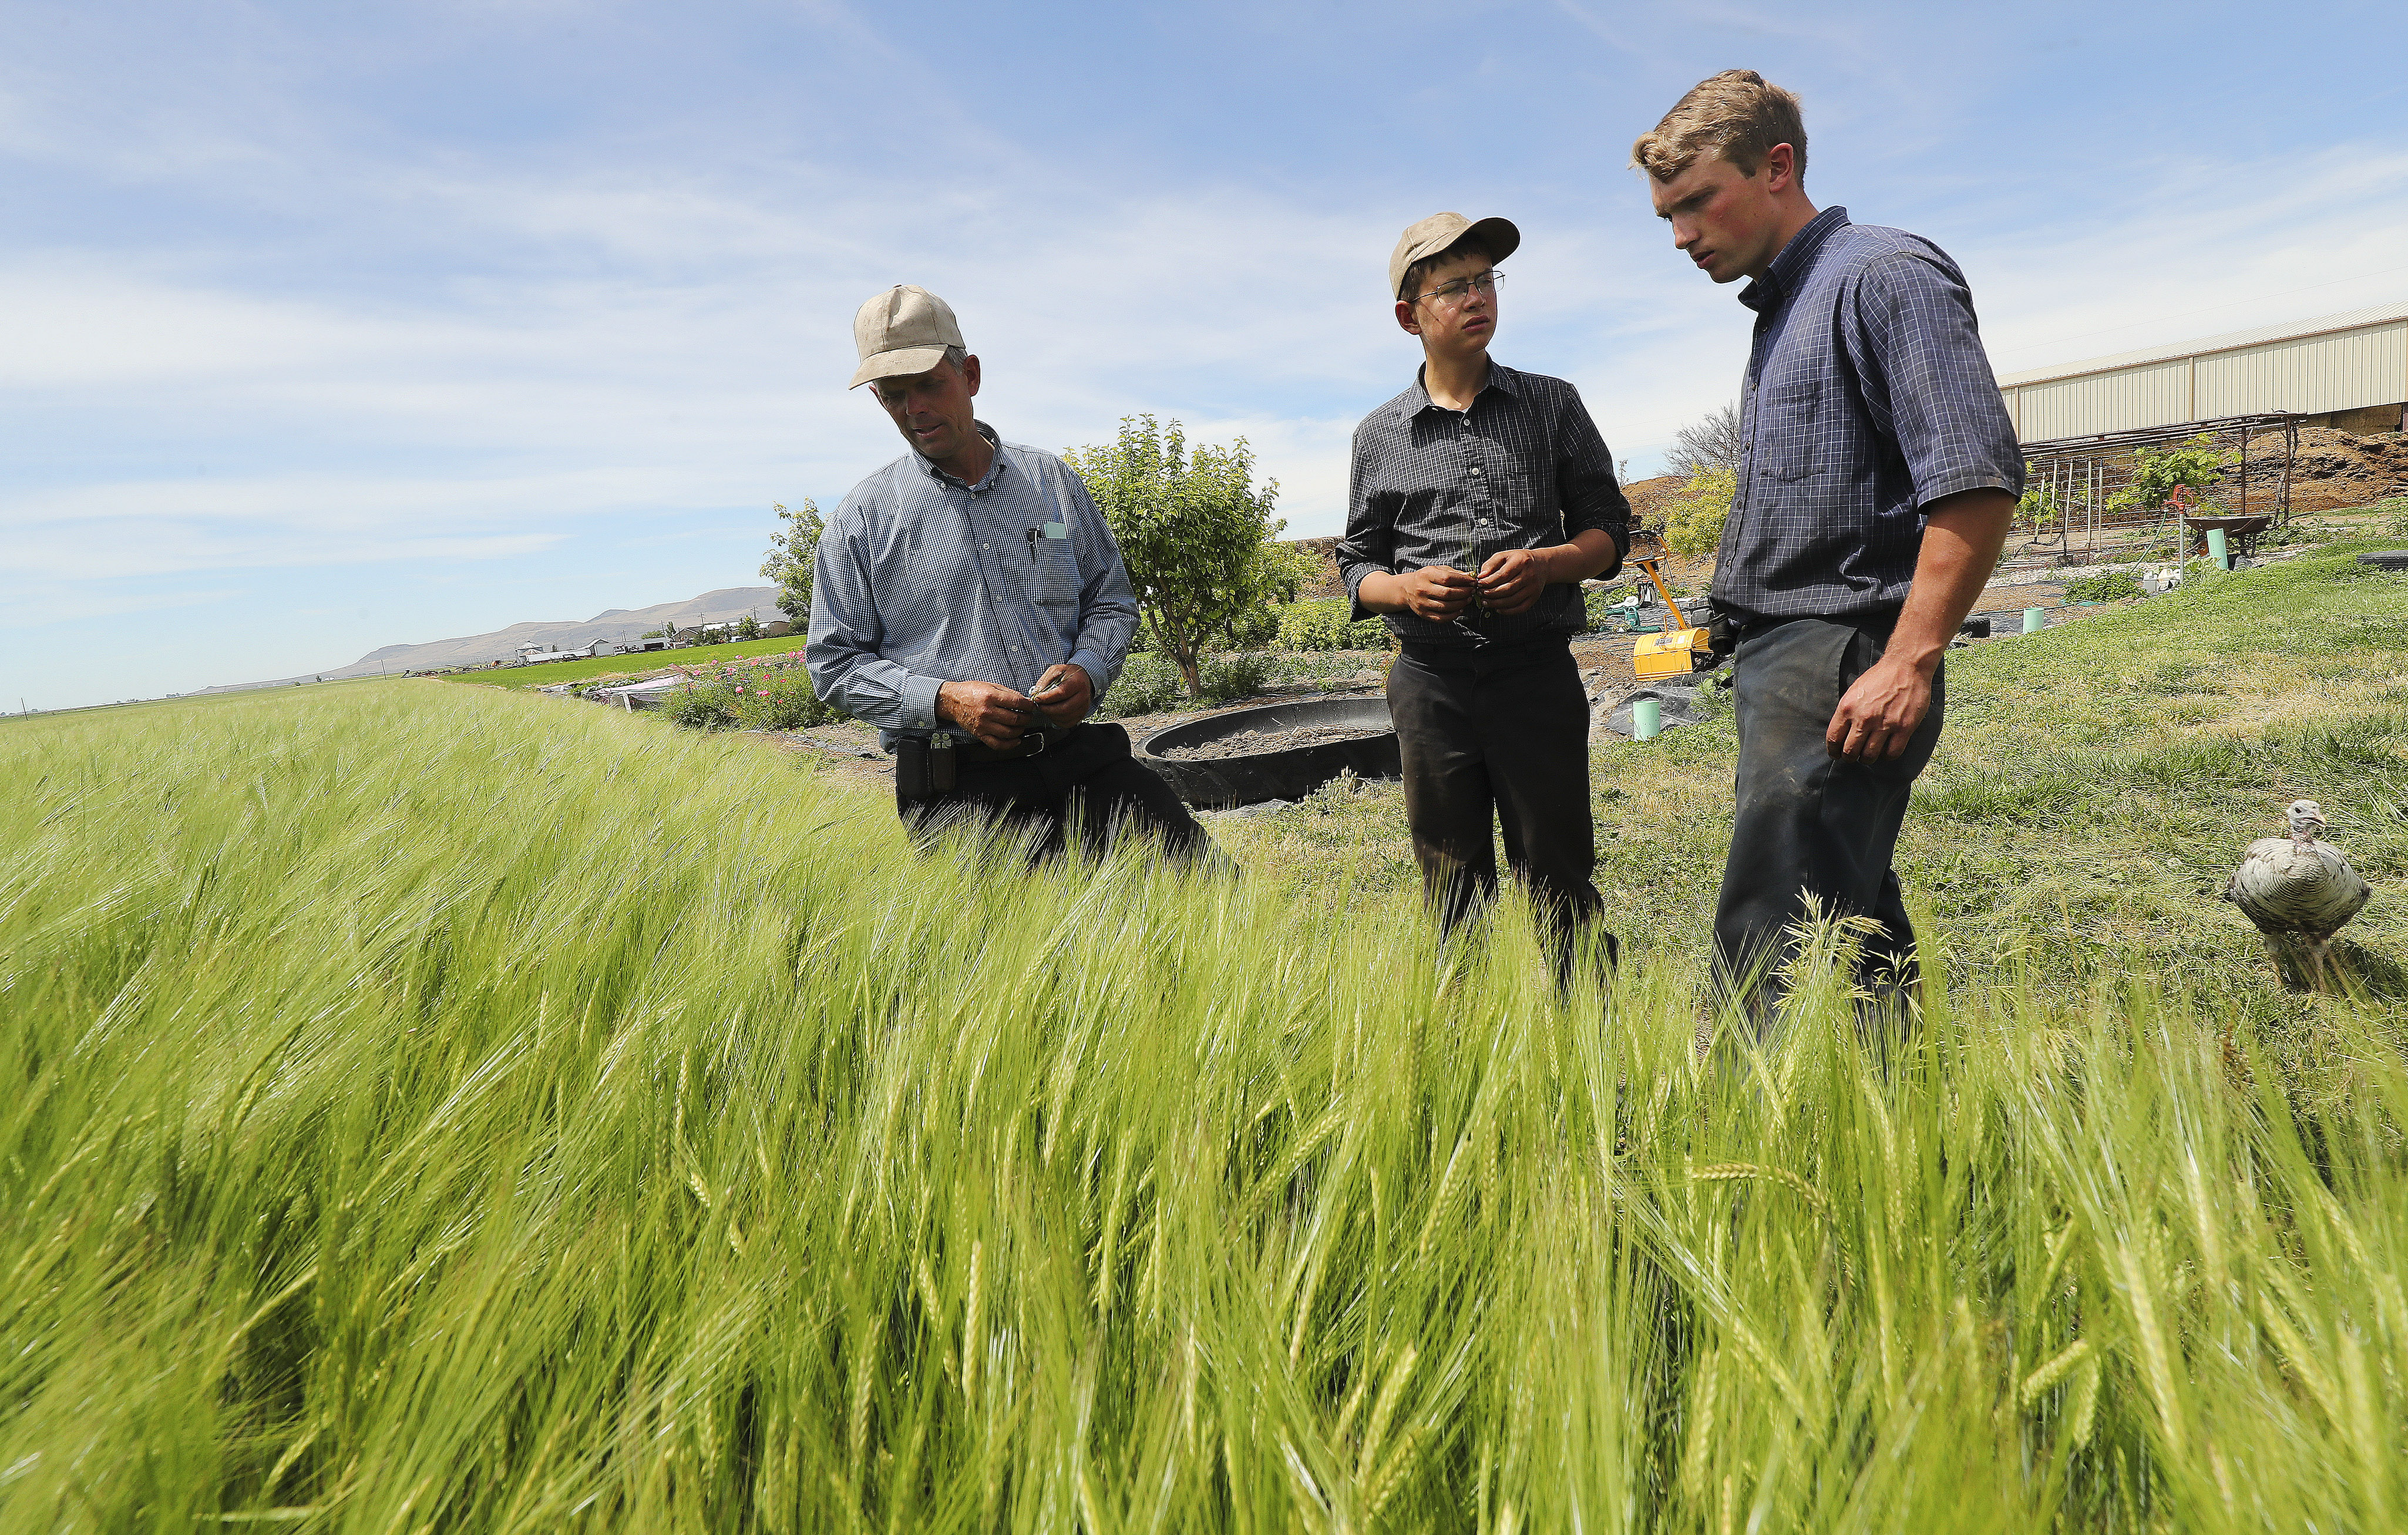 Nathan Hege,bishop of the Northern Utah Mennonite Church, left, look over the barley crop on his farm in Tremonton with son Adrian, center, and son-in-law Lavern Mast on Wednesday, June 24, 2020.